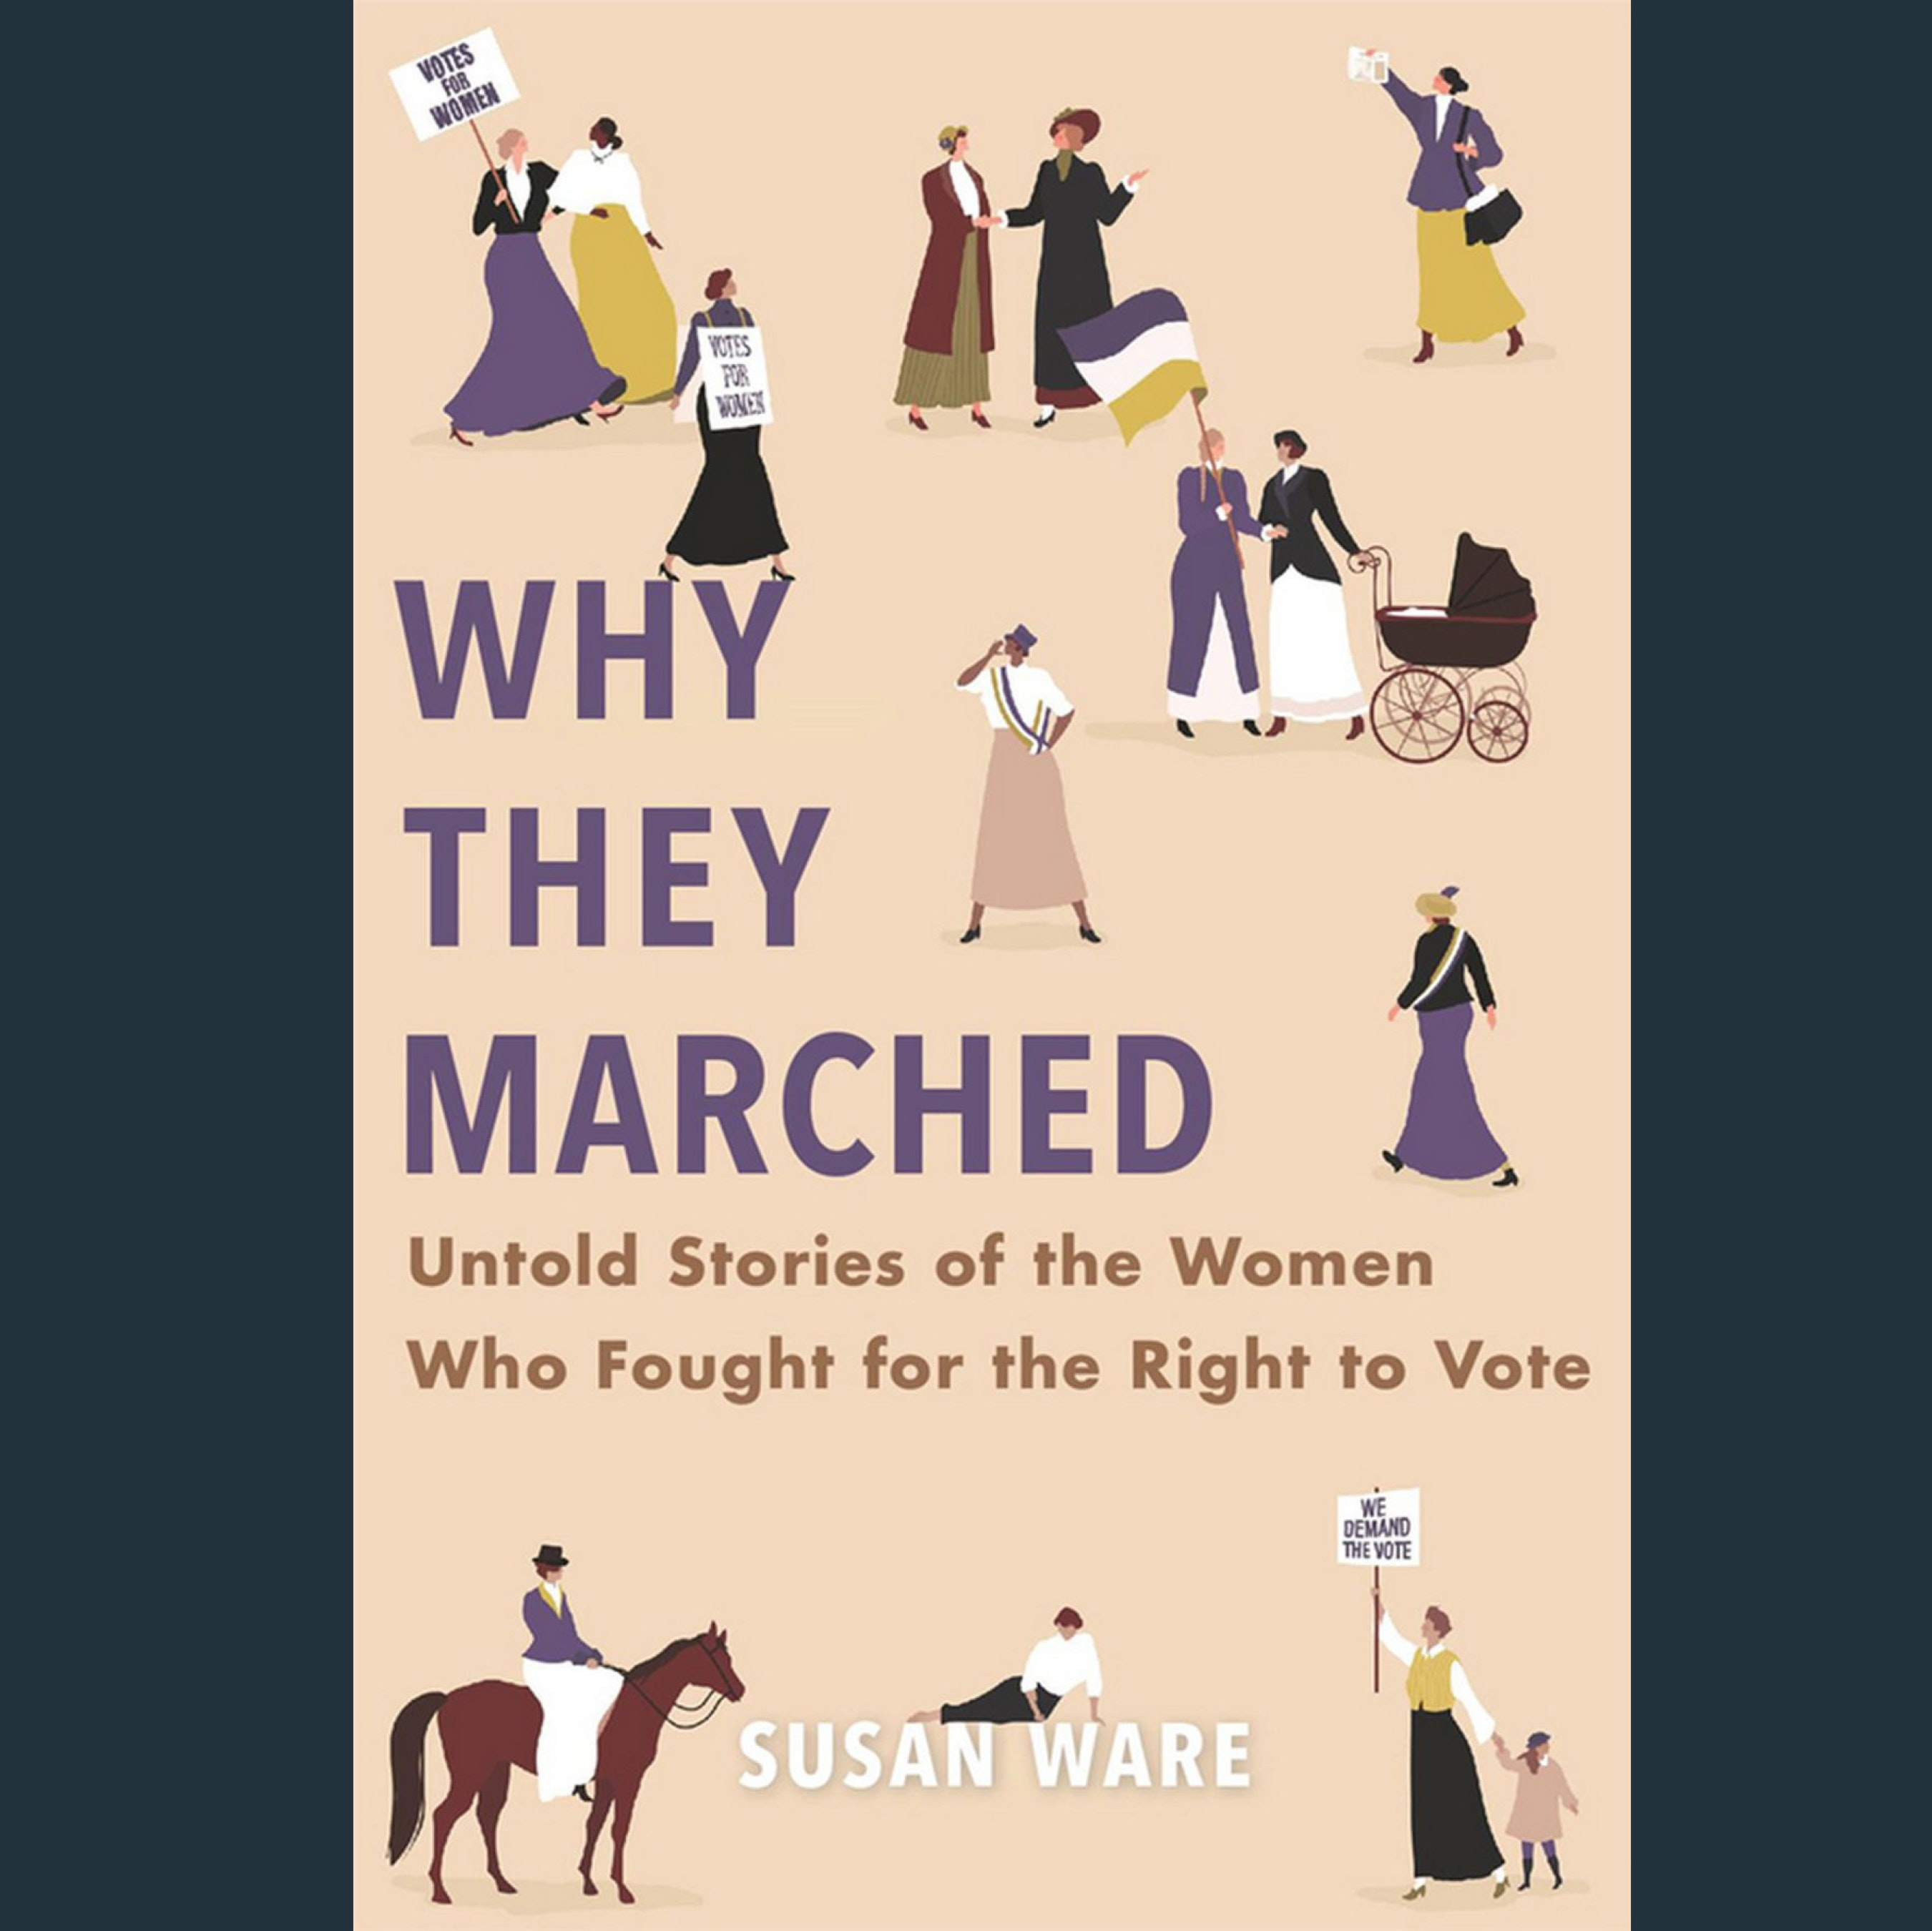 Cover of Susan Ware's book Why They Marched